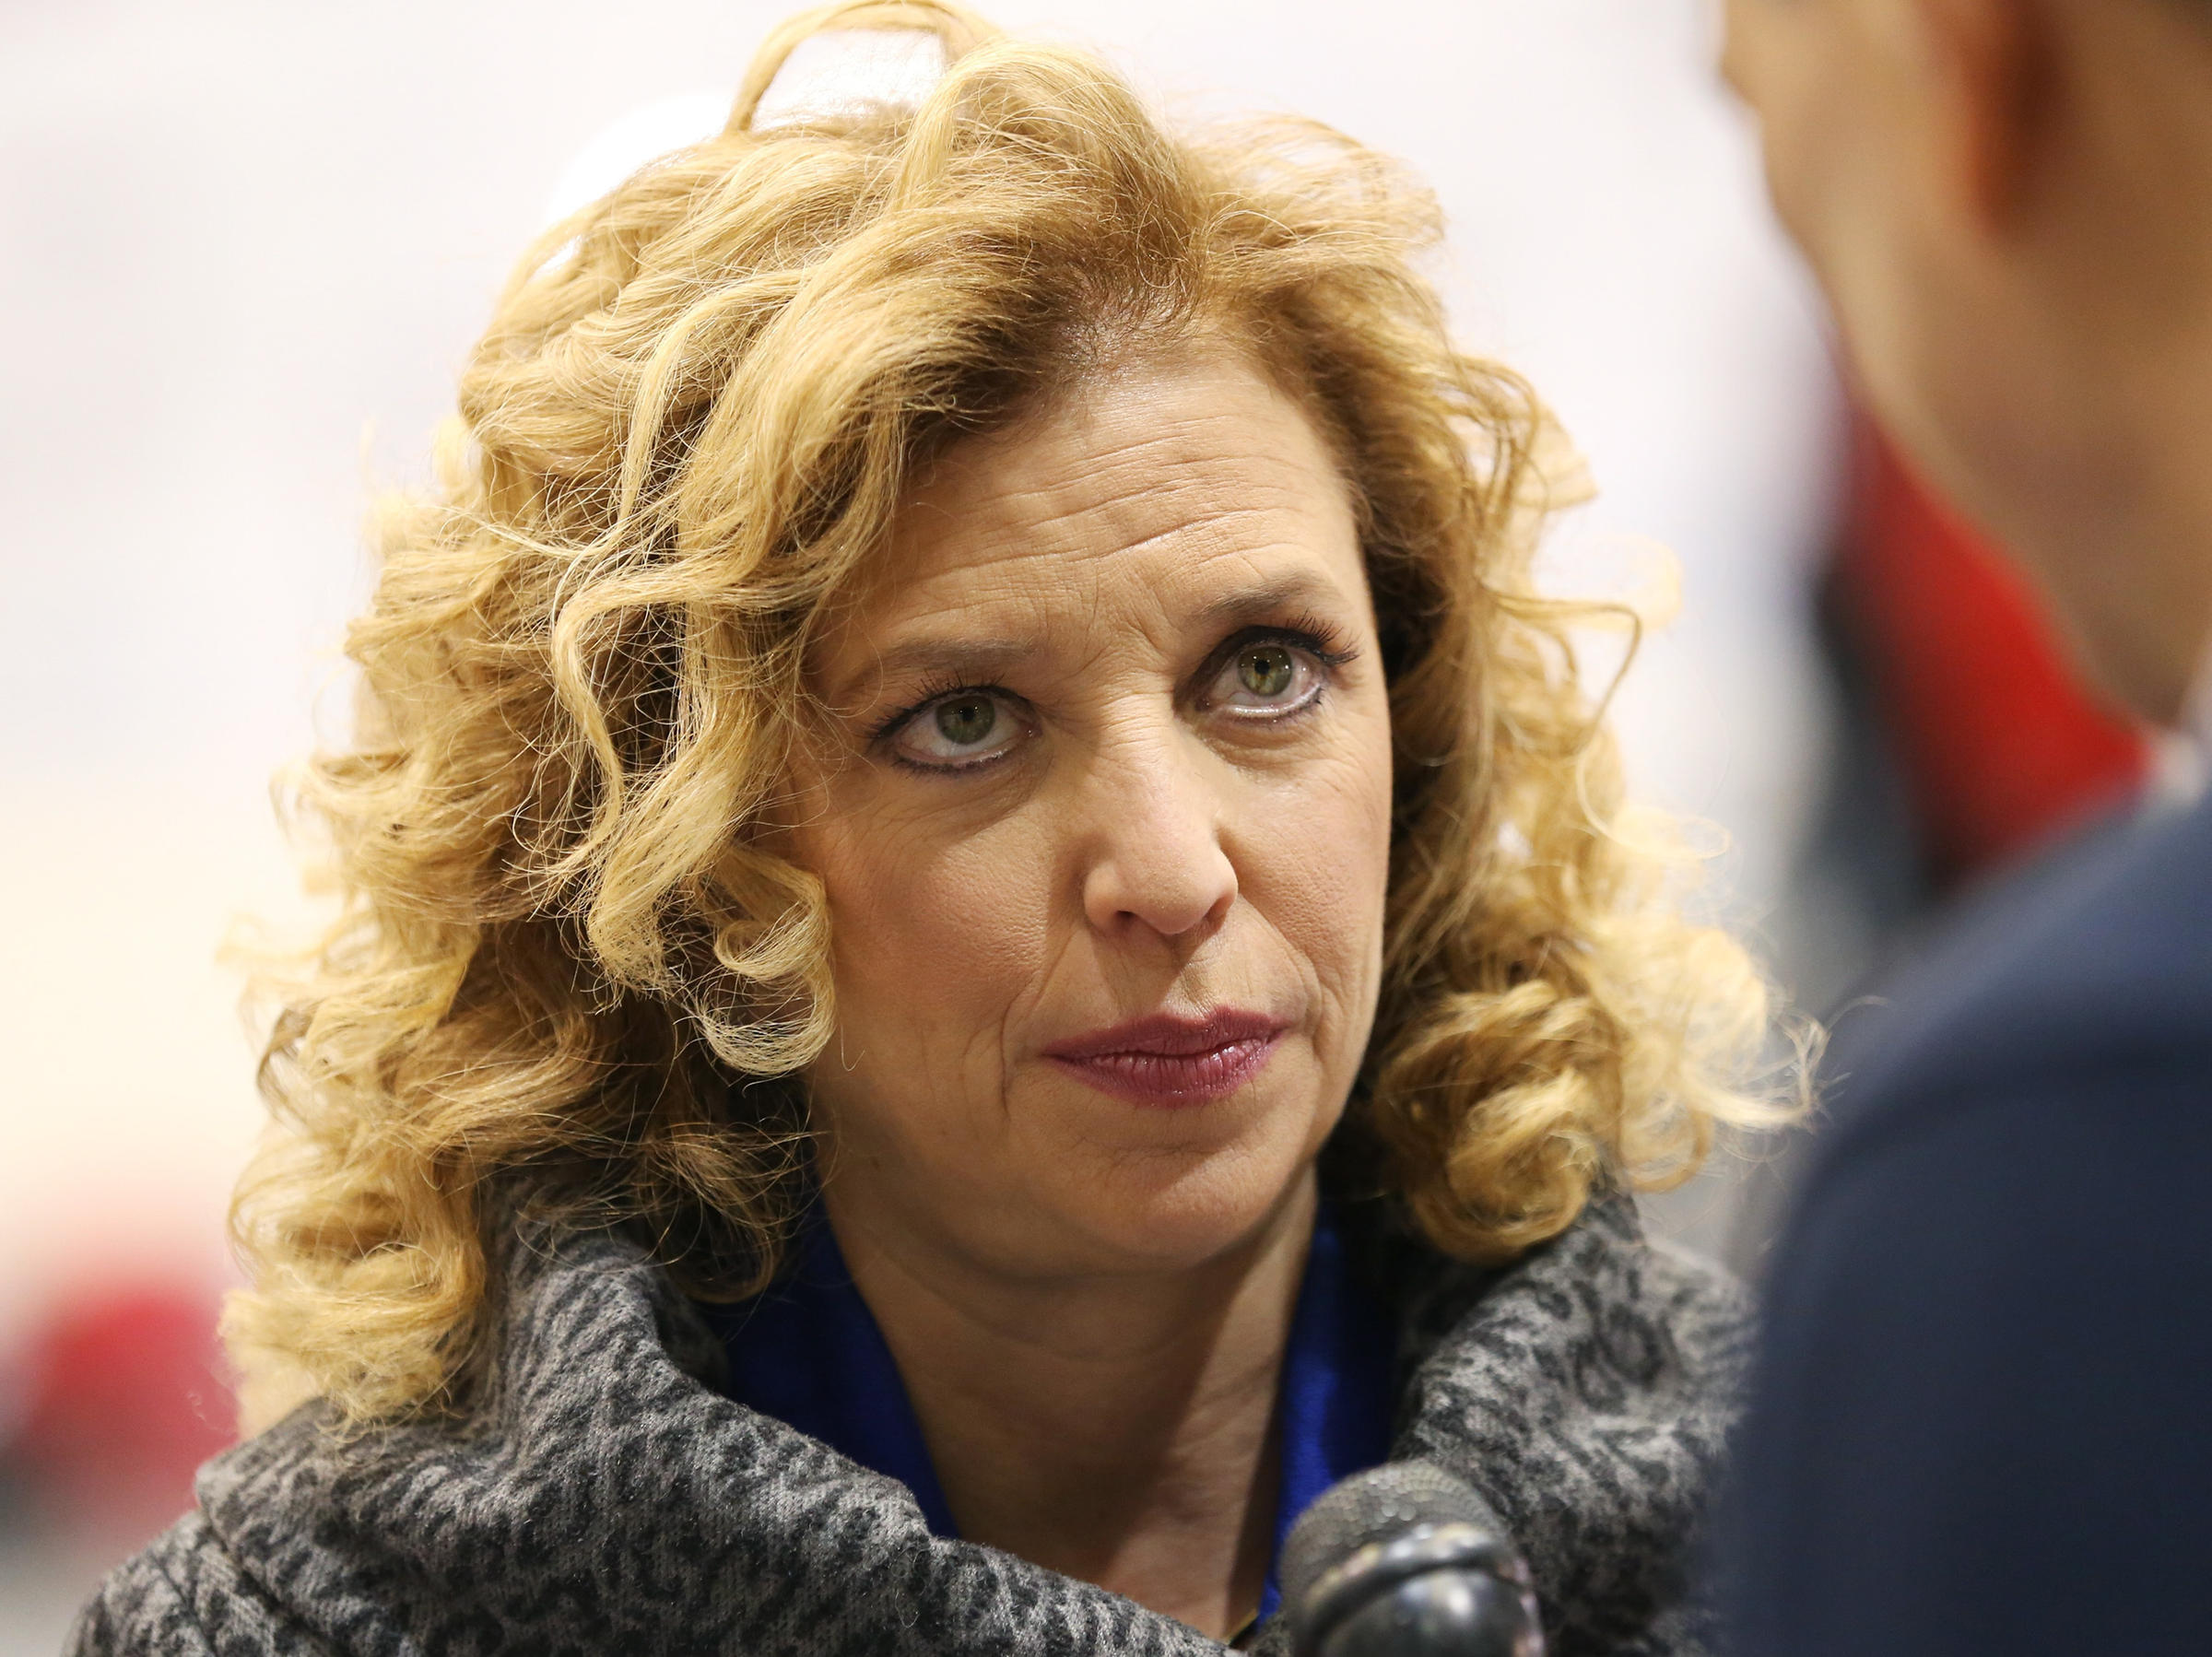 Wasserman Schultz could face legal complaint related to email leak